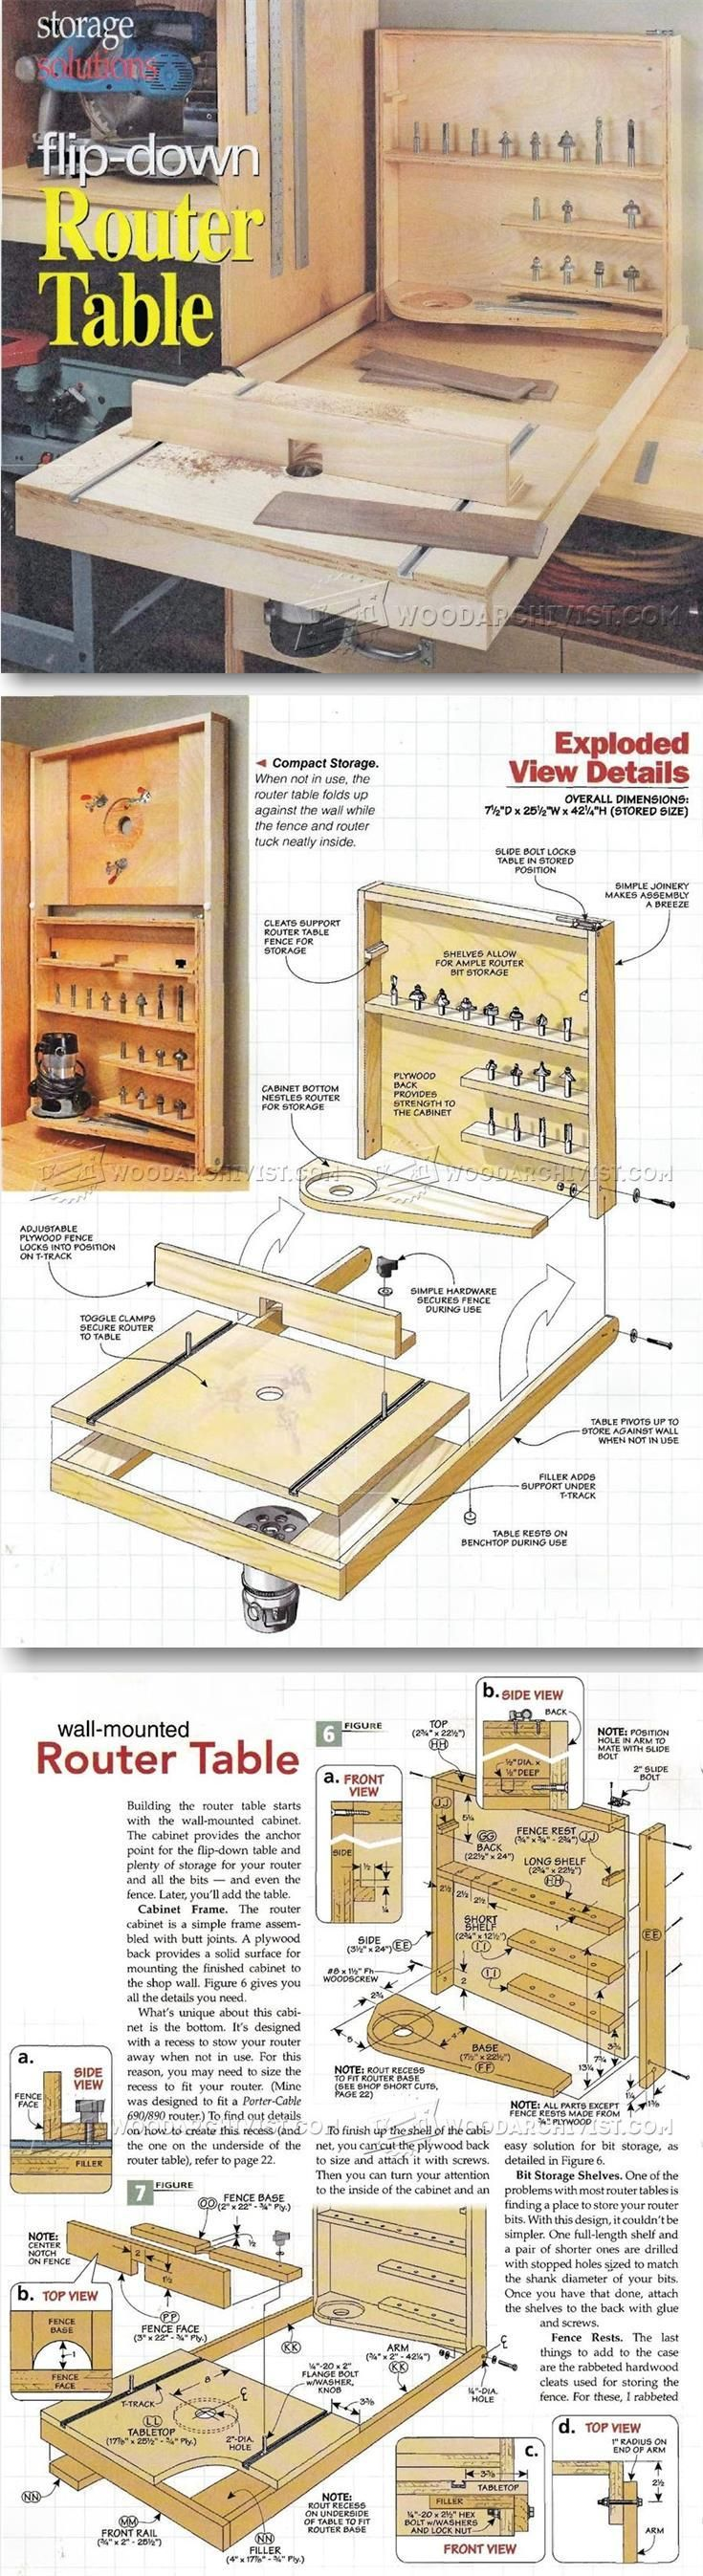 Mobile router table plans - Fold Down Router Table Plans Router Tips Jigs And Fixtures Woodarchivist Com